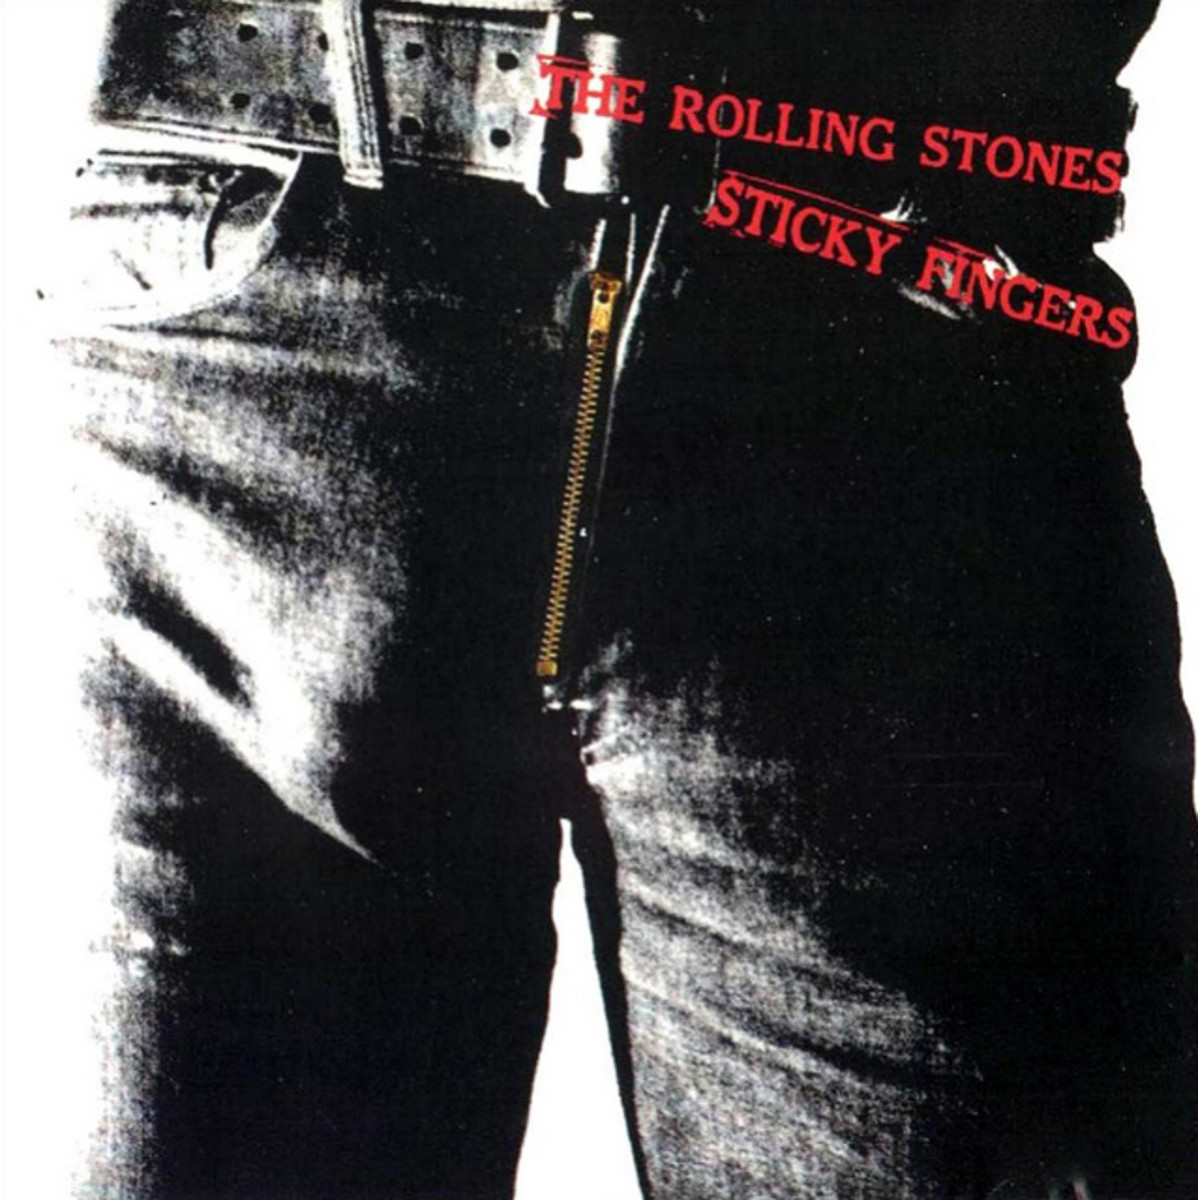 "The Rolling Stones ""Sticky Fingers"" Rolling Stones Records COC 39105 12"" LP Vinyl Record US Pressing (1971) Gatefold Album Cover Art & Design by Andy Warhol"